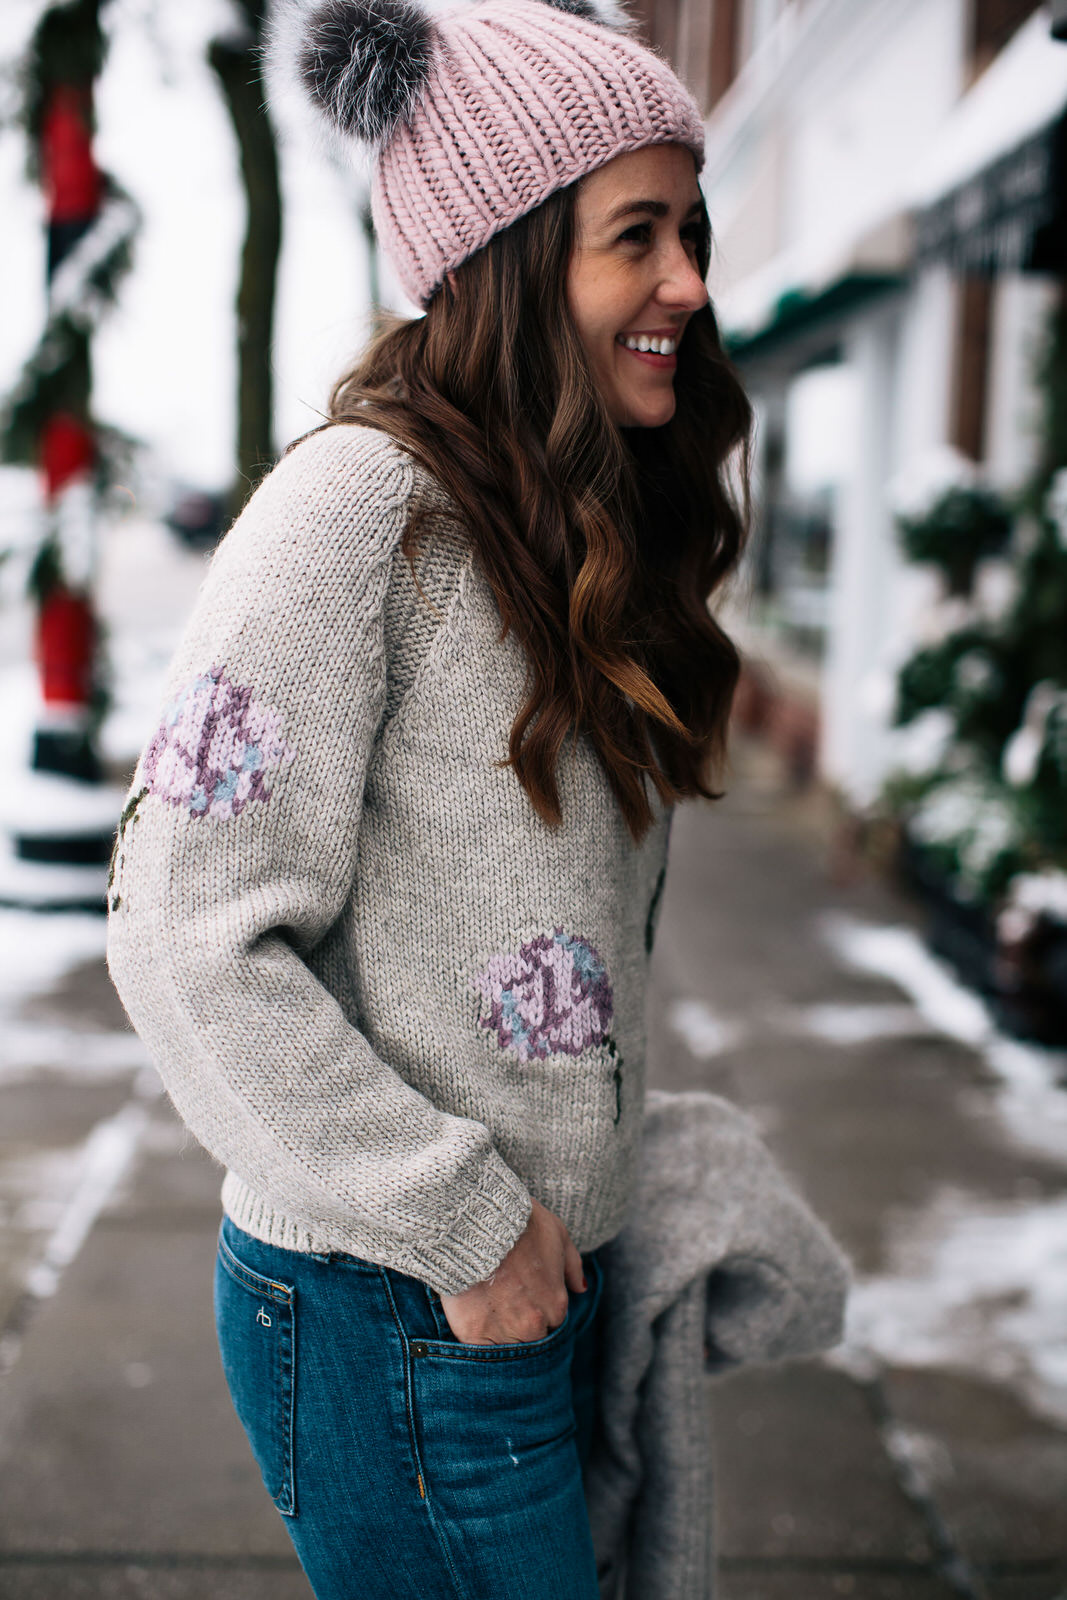 stylish casual outfit ideas for winter